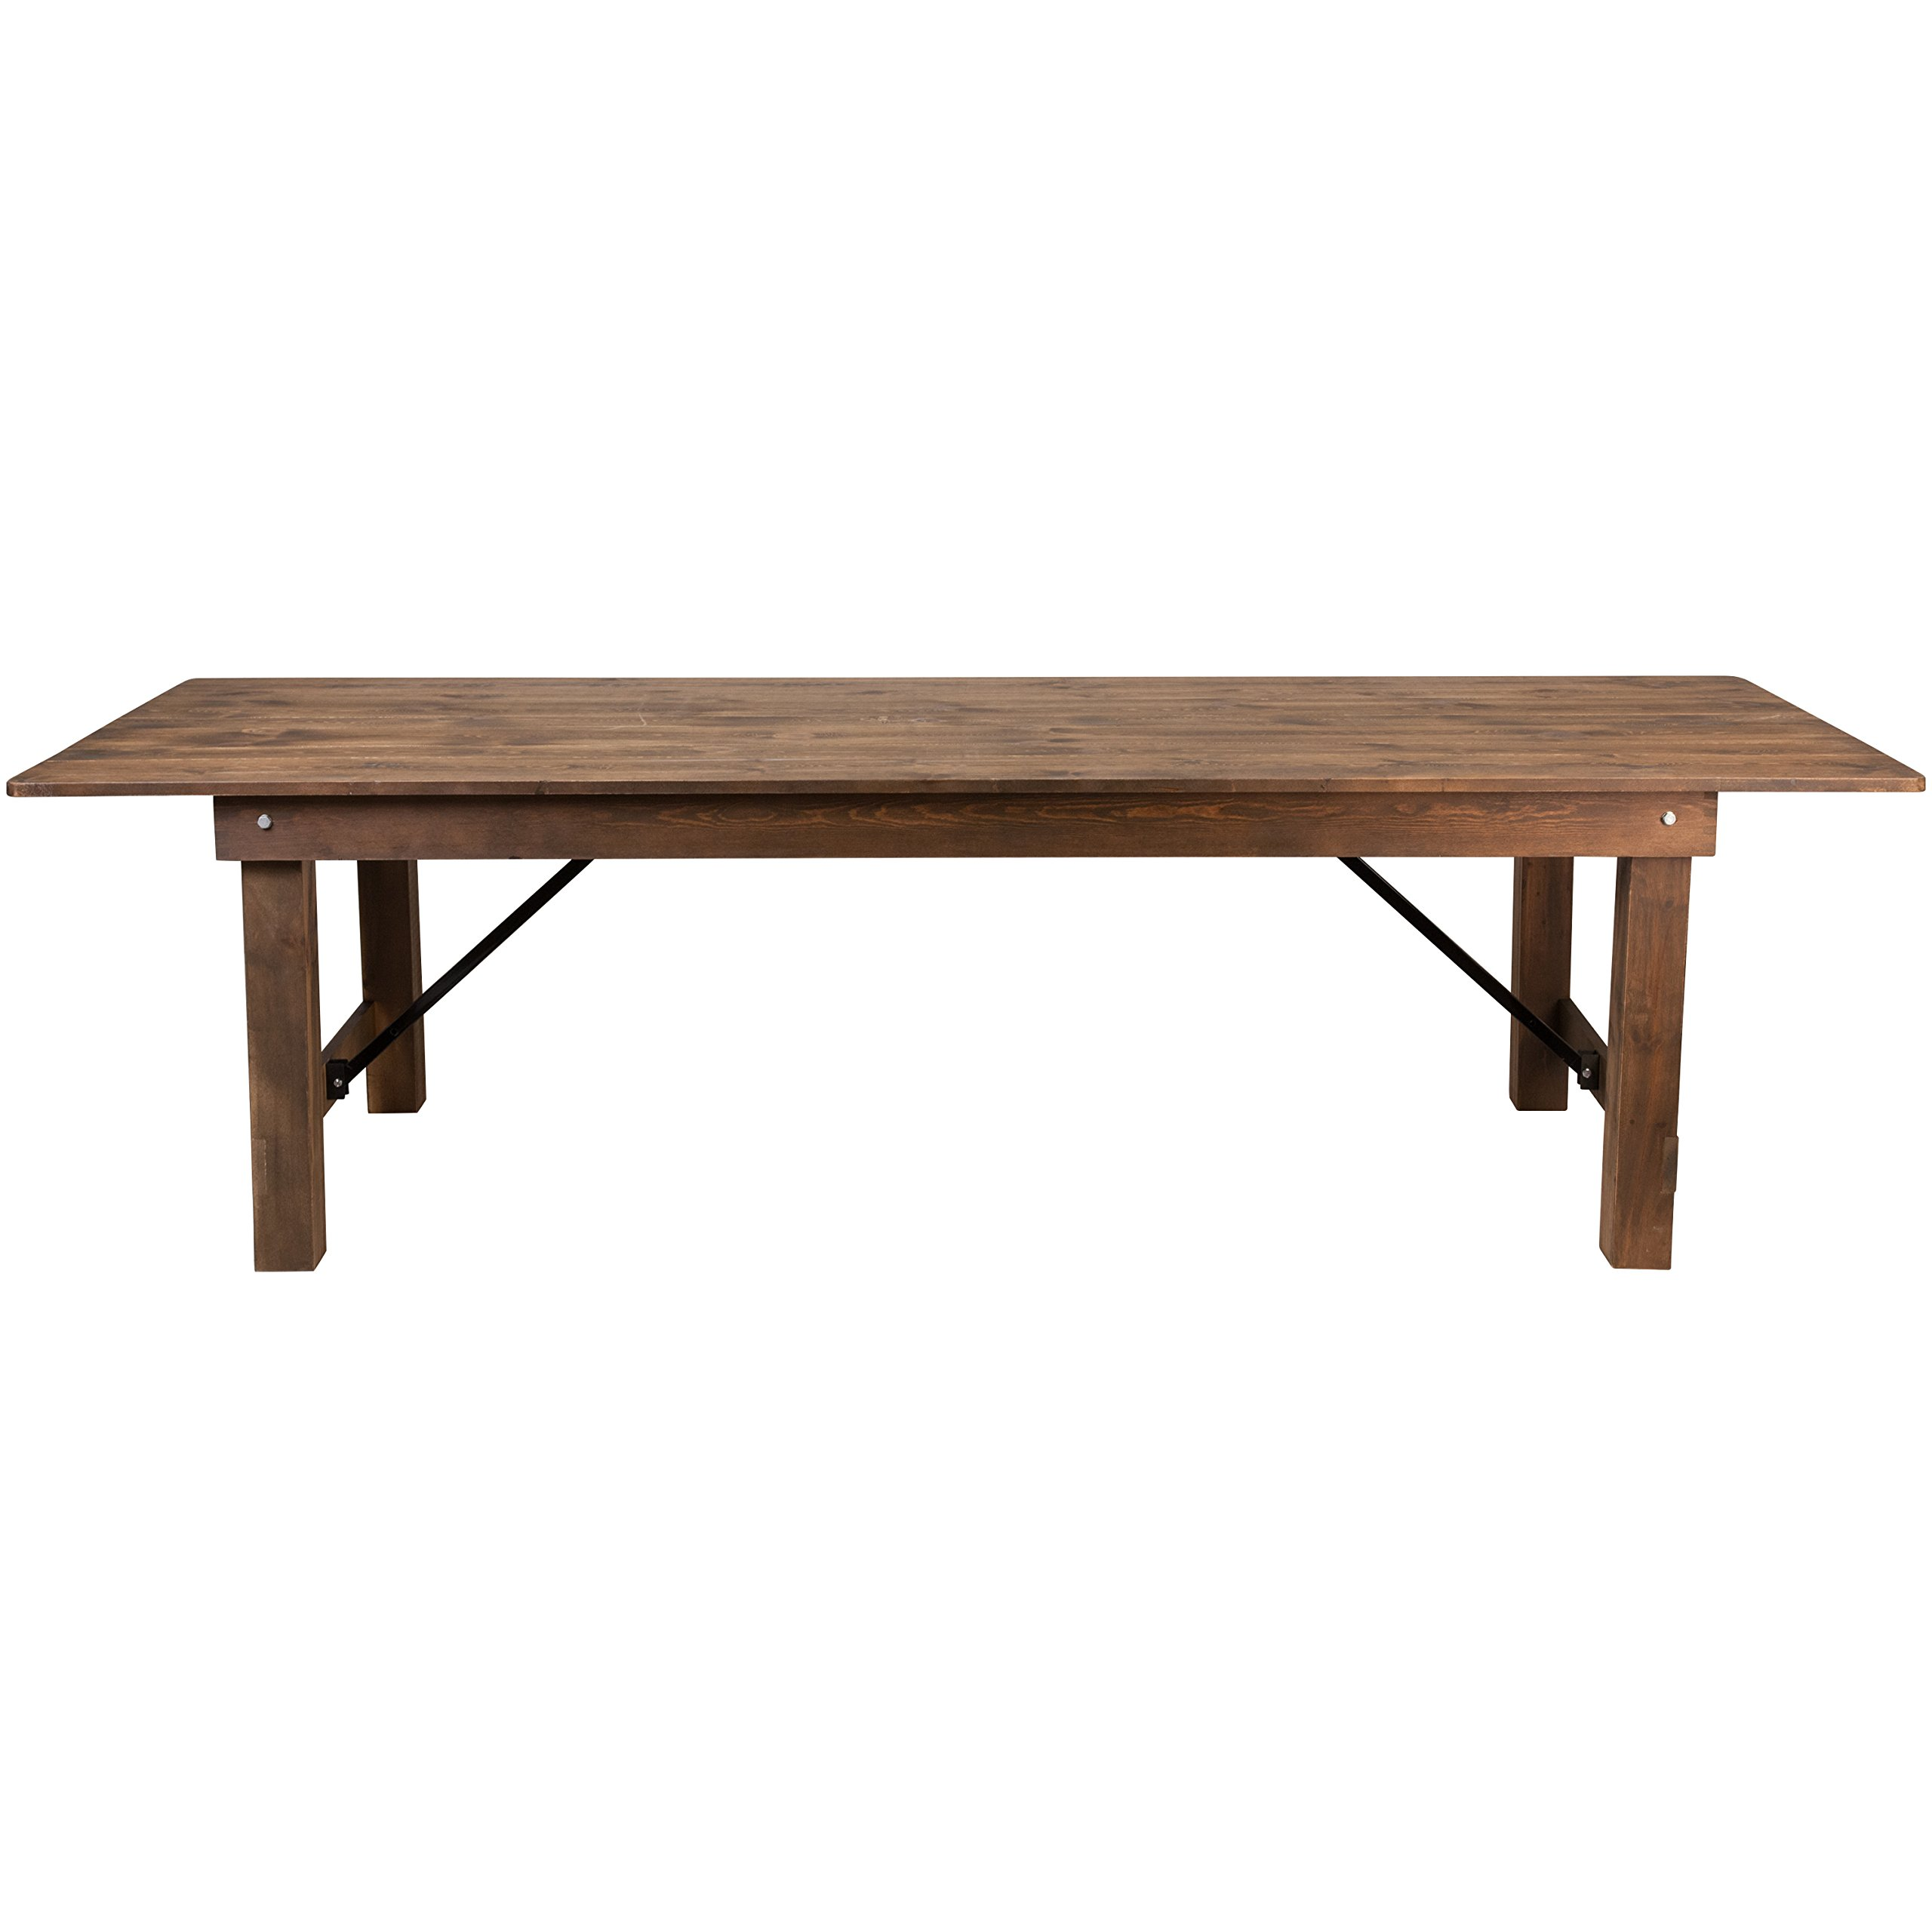 Flash Furniture HERCULES Series 9' x 40'' Antique Rustic Solid Pine Folding Farm Table by Flash Furniture (Image #2)